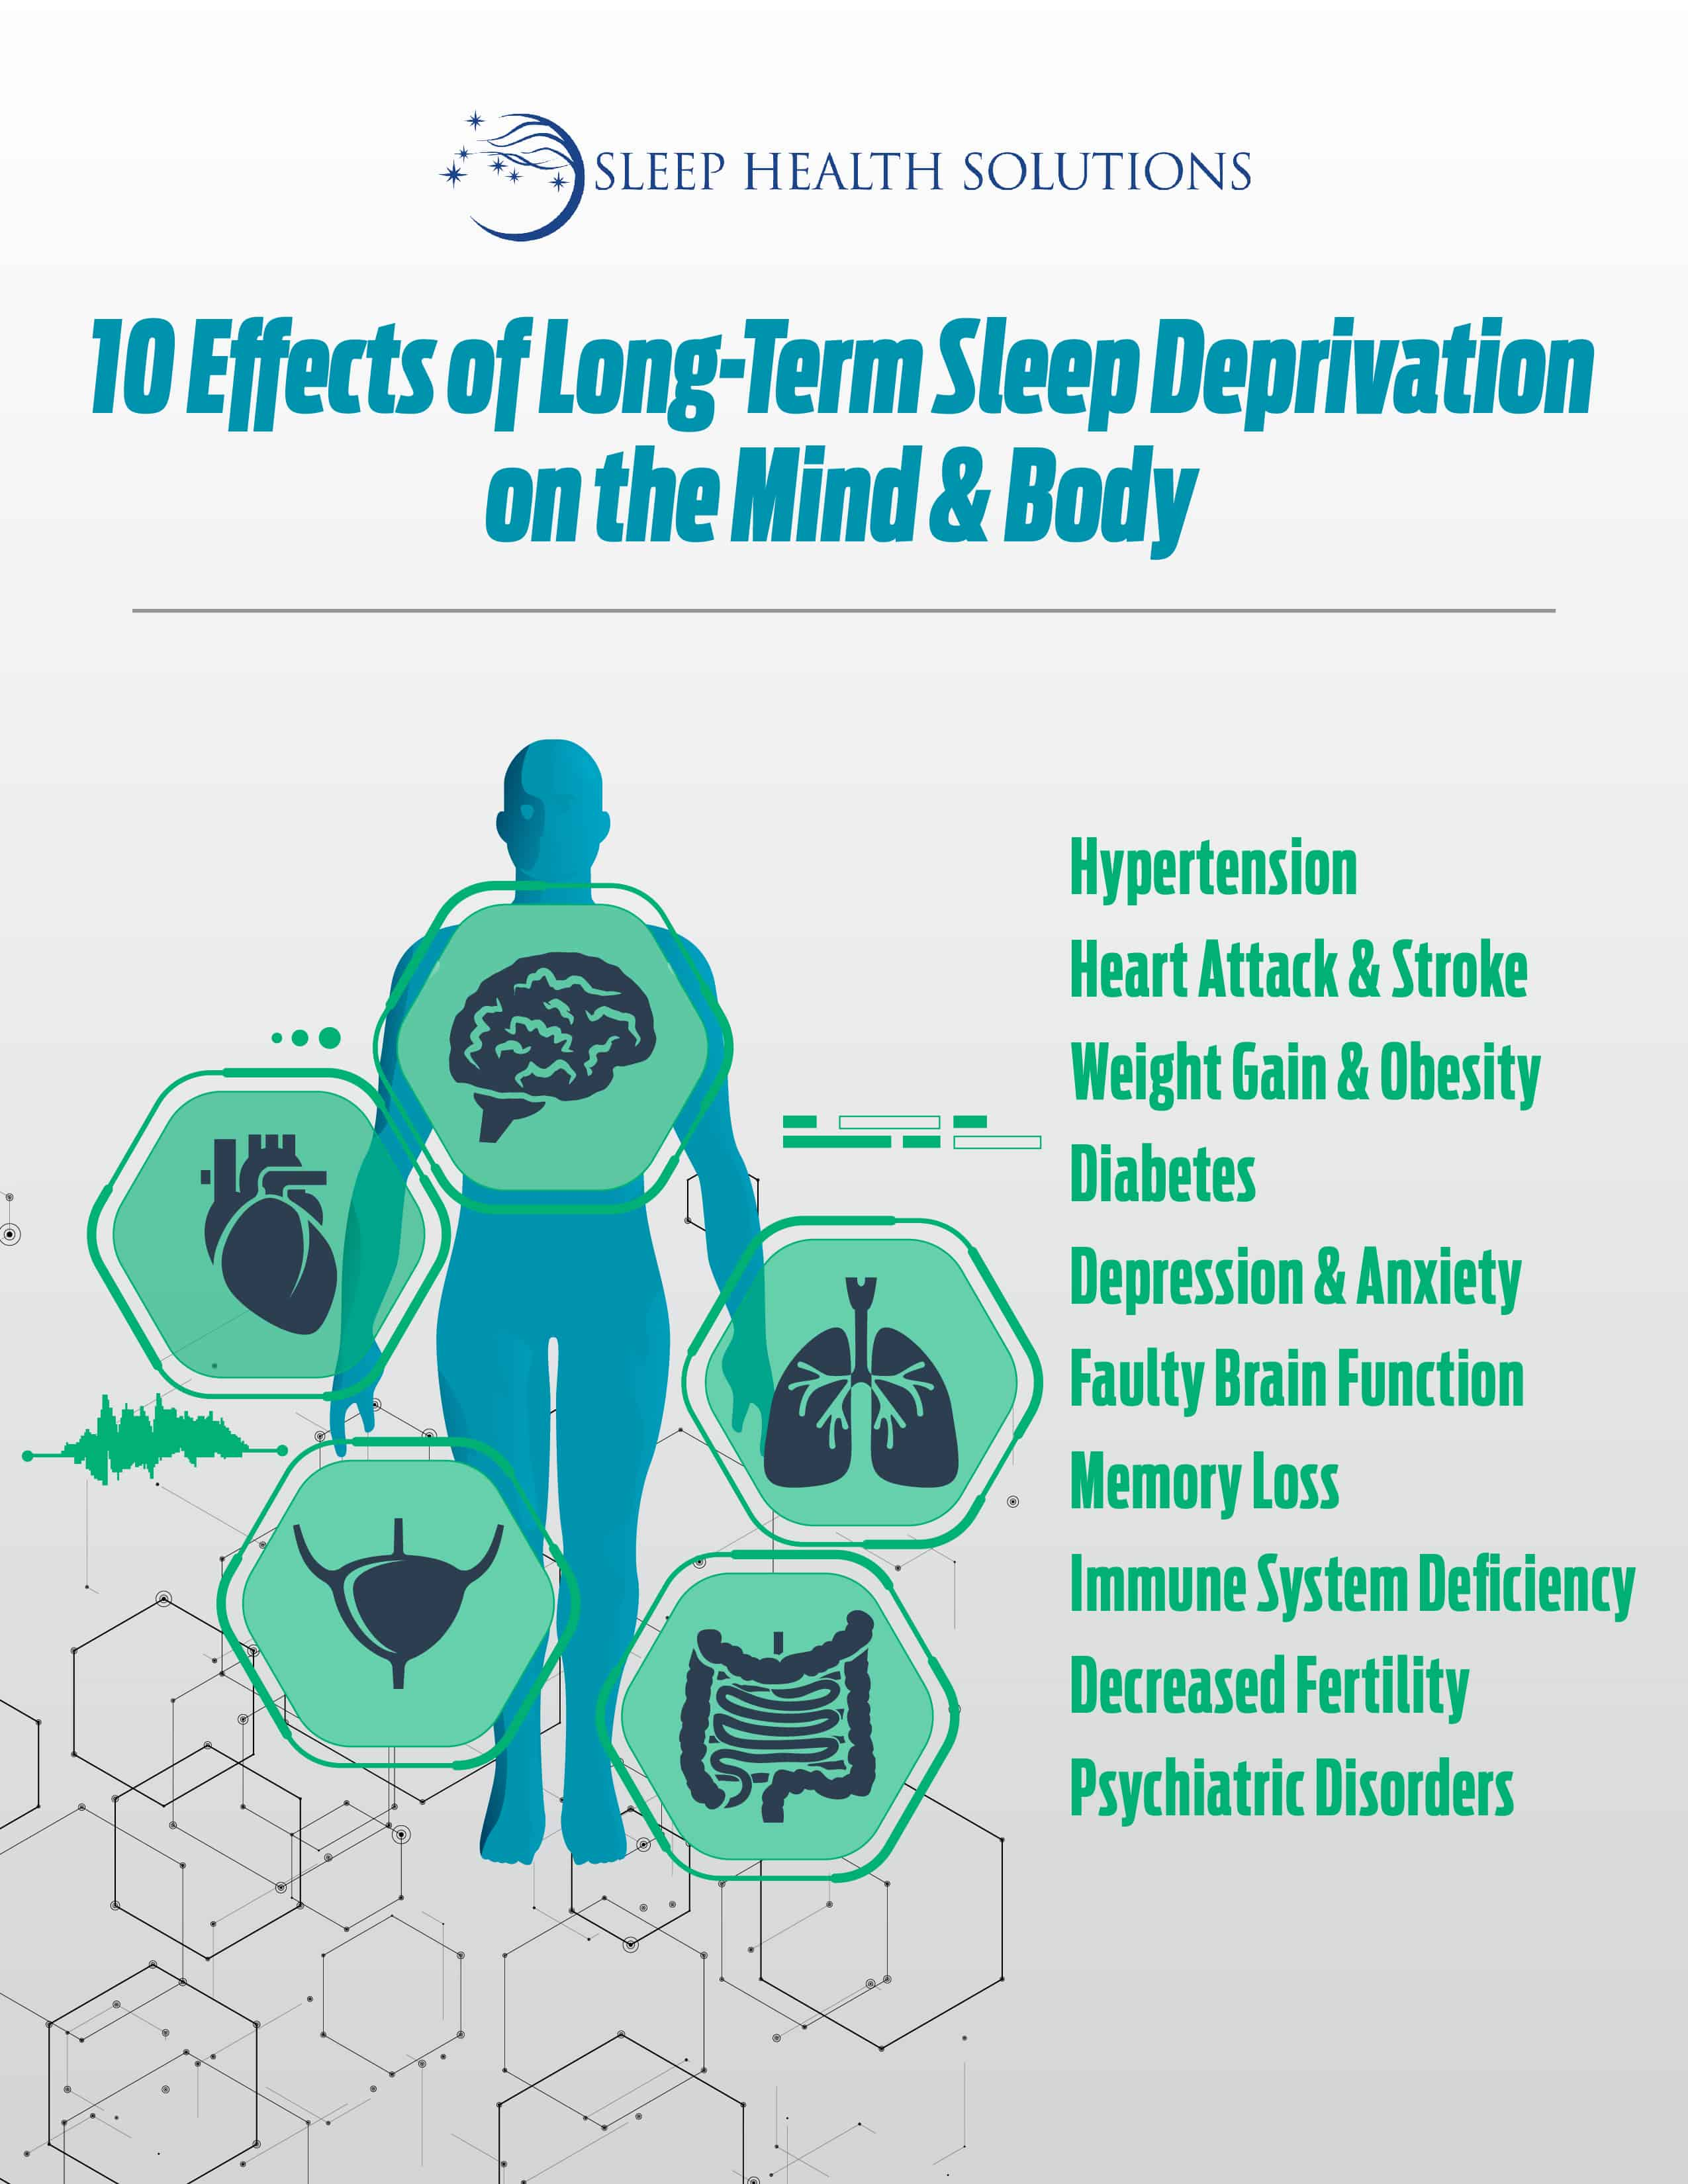 Effects of Sleep Deprivation on mind and body diagram